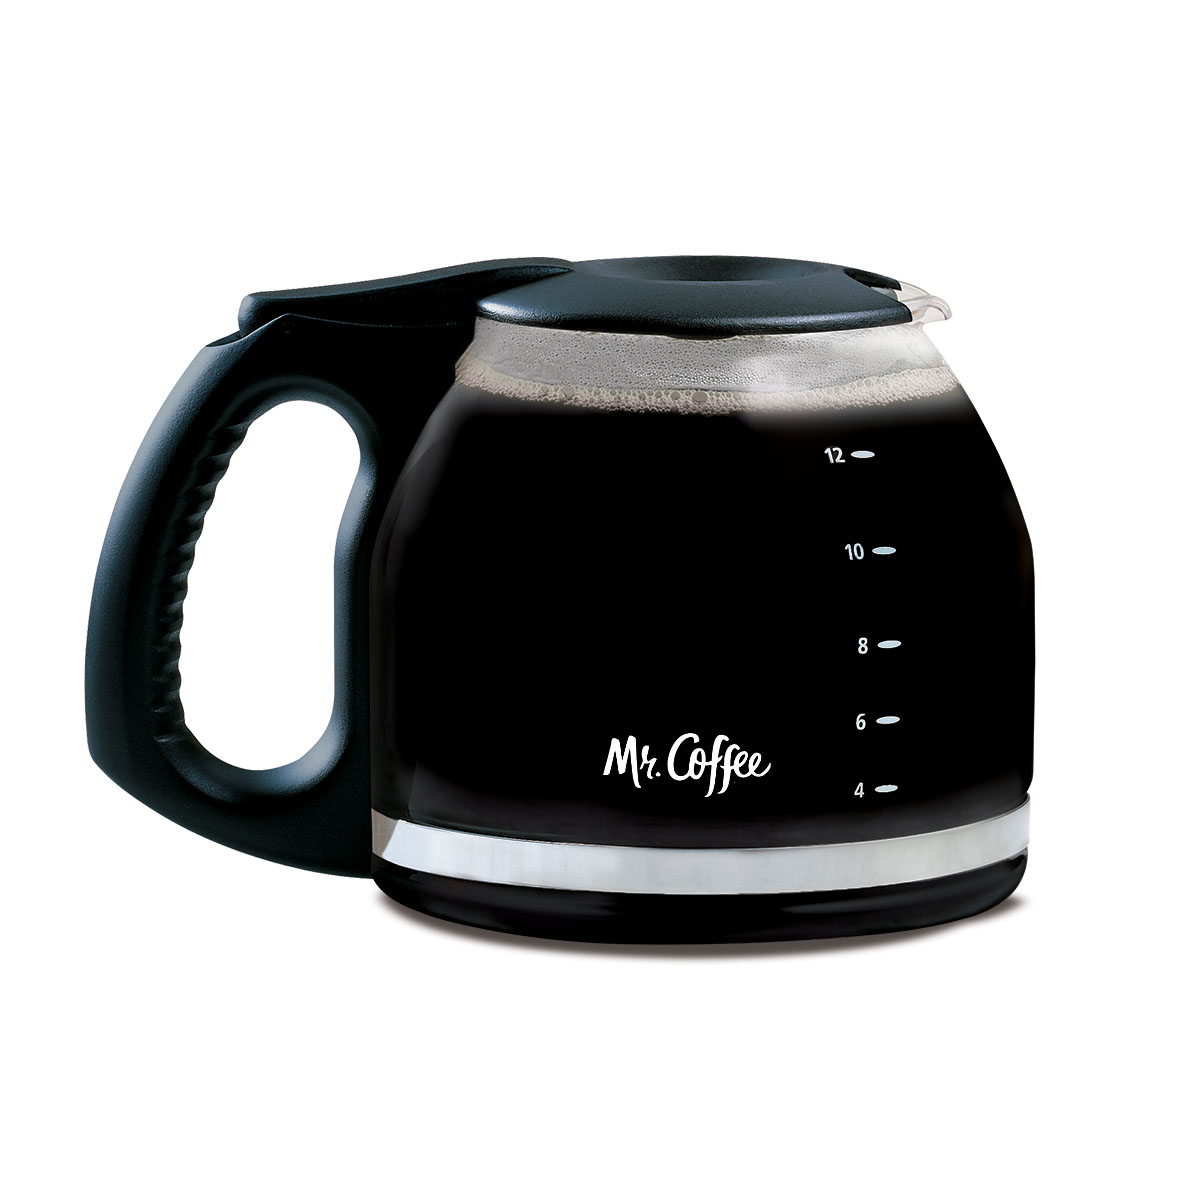 Is Oster Coffee Maker Bpa Free : Oster 12-cup Programmable Coffee Maker BVSTEHX39-033 Parts Oster Canada